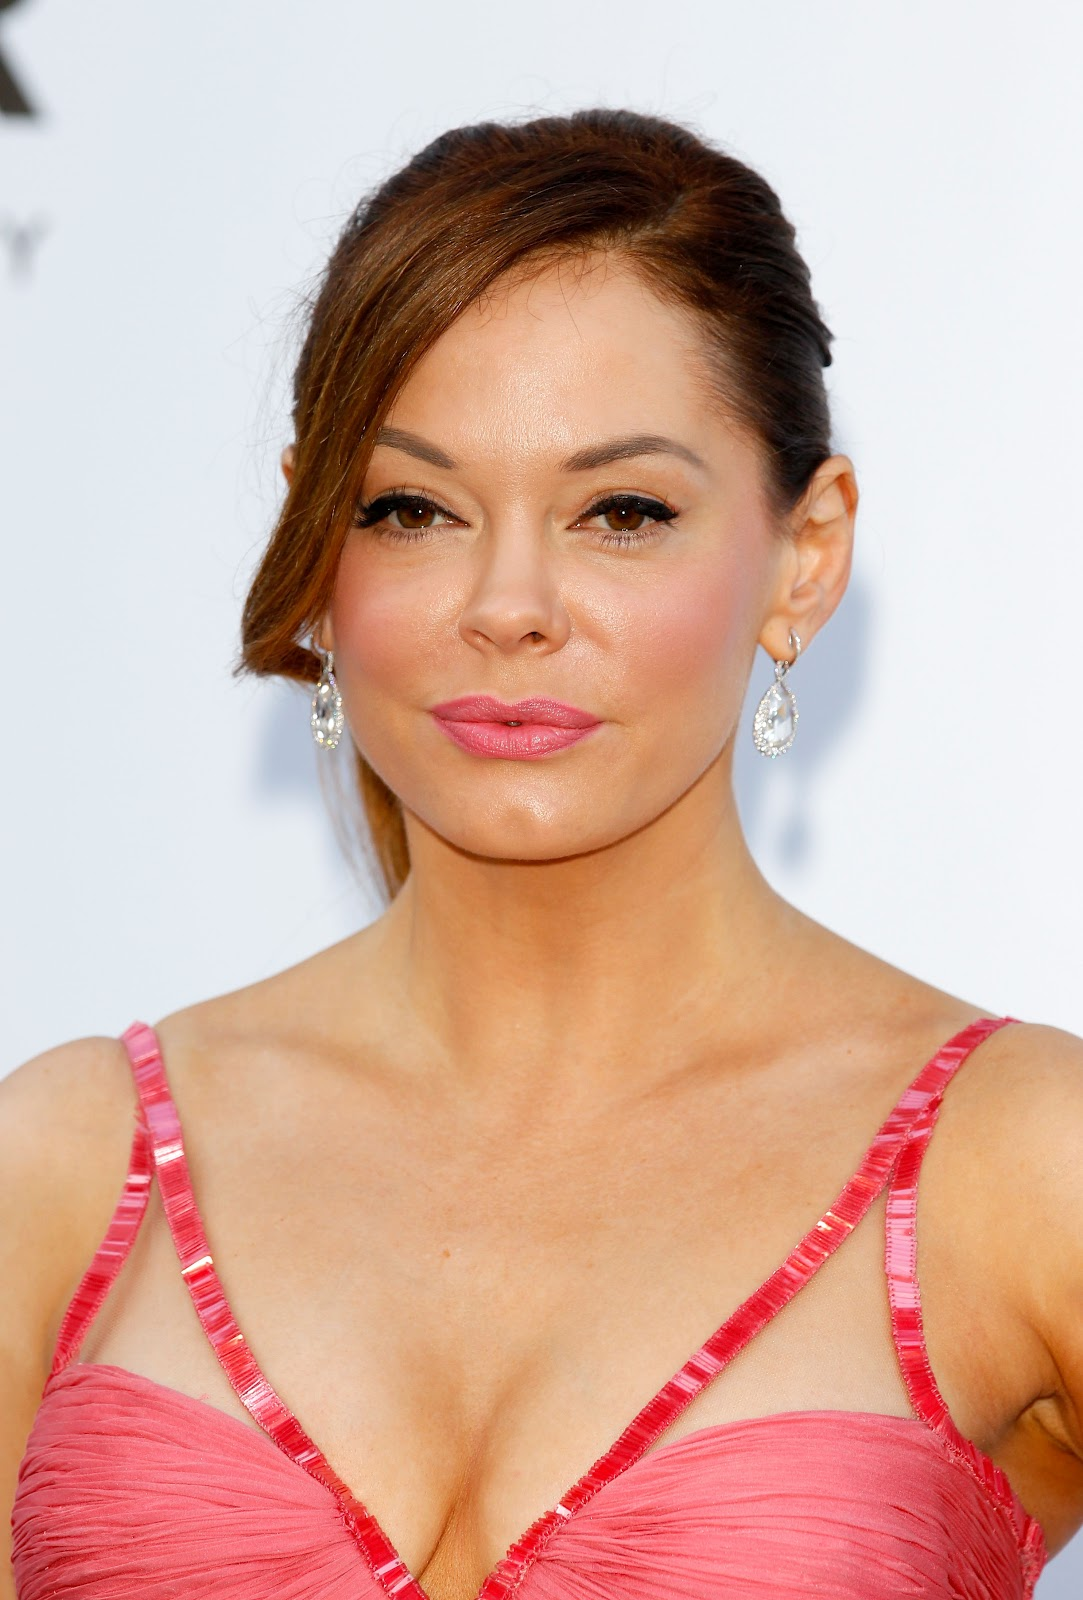 Rose mcgowan 2011 rose mcgowan car accident imdb rose mcgowan rose